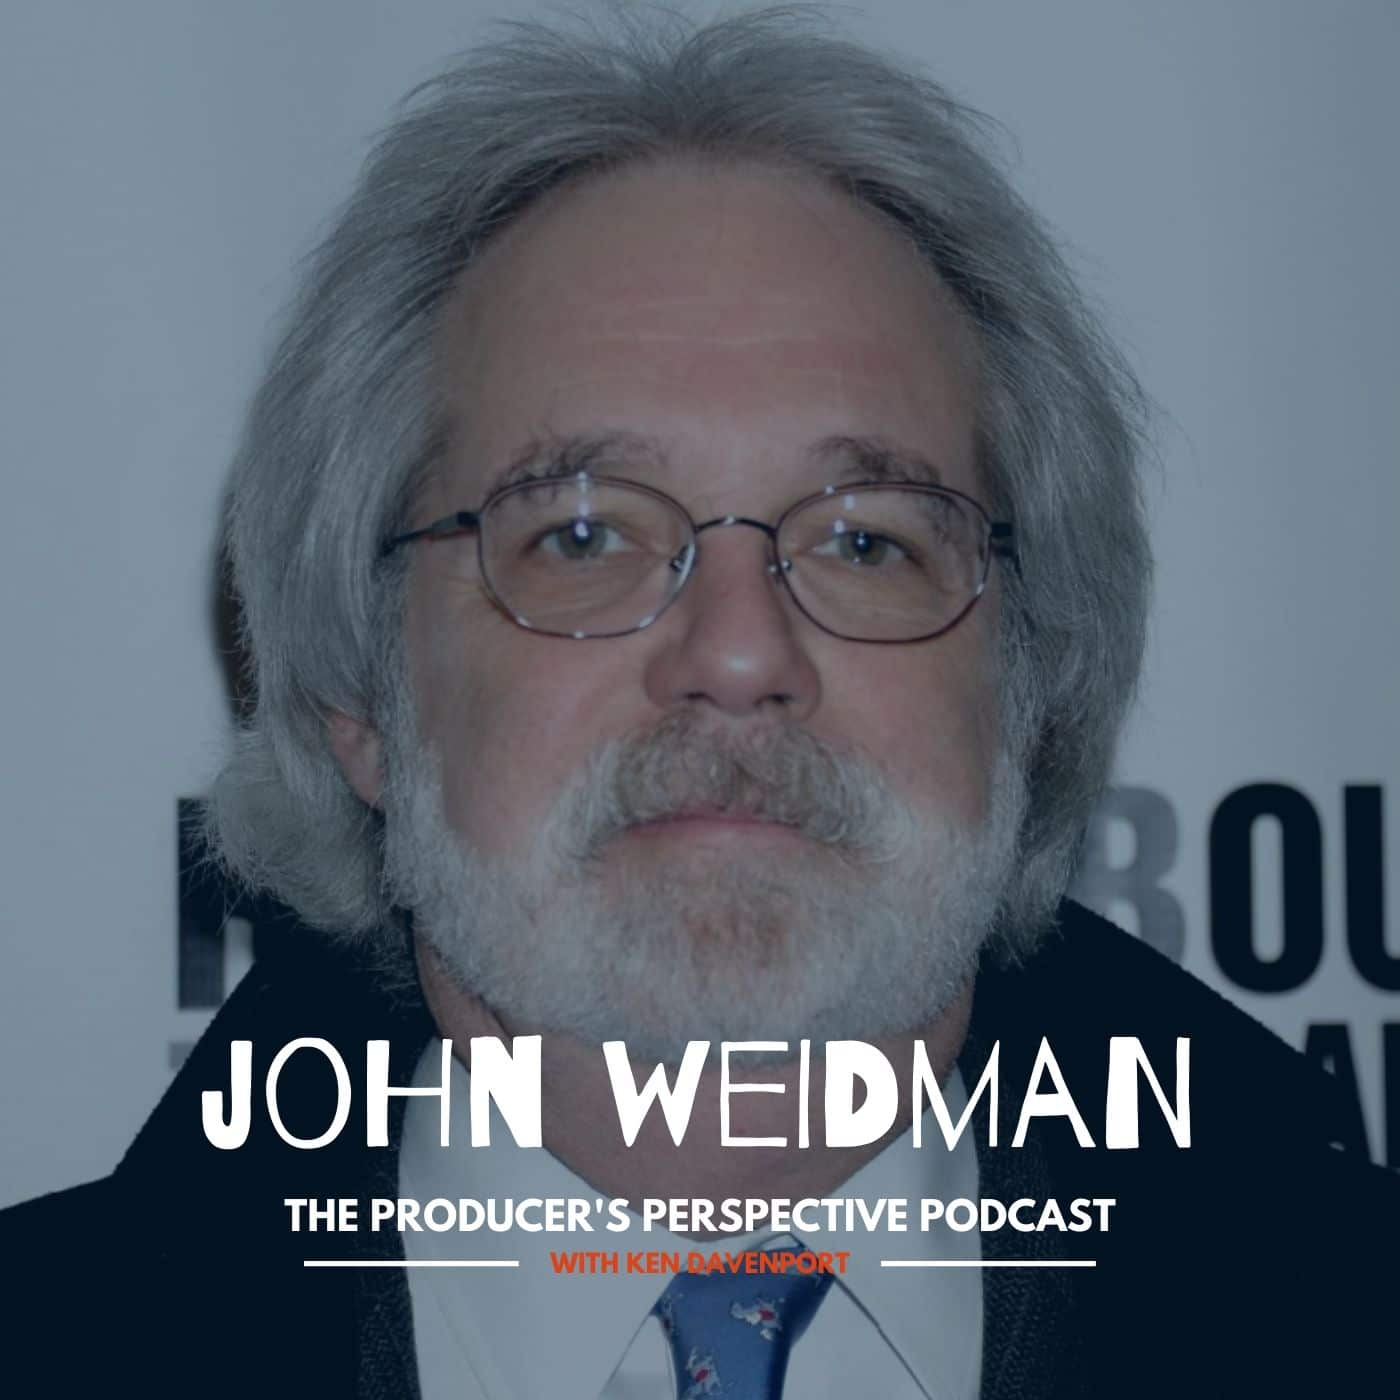 Ken Davenport's The Producer's Perspective Podcast Episode 158 - John Weidman